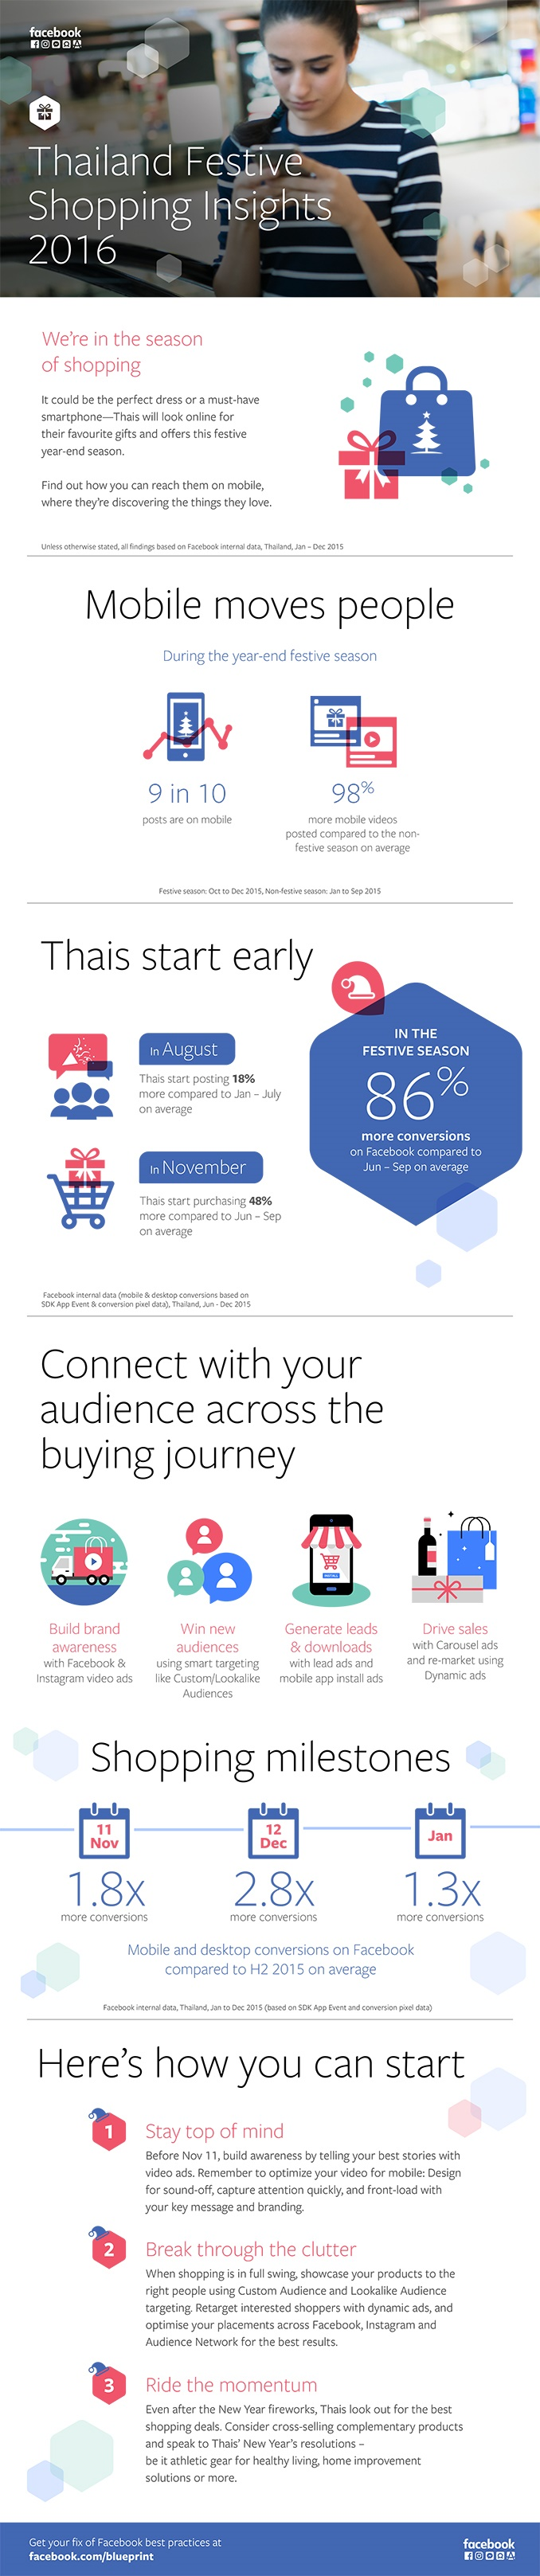 facebook_thai-festive-season-insights_infographics_full